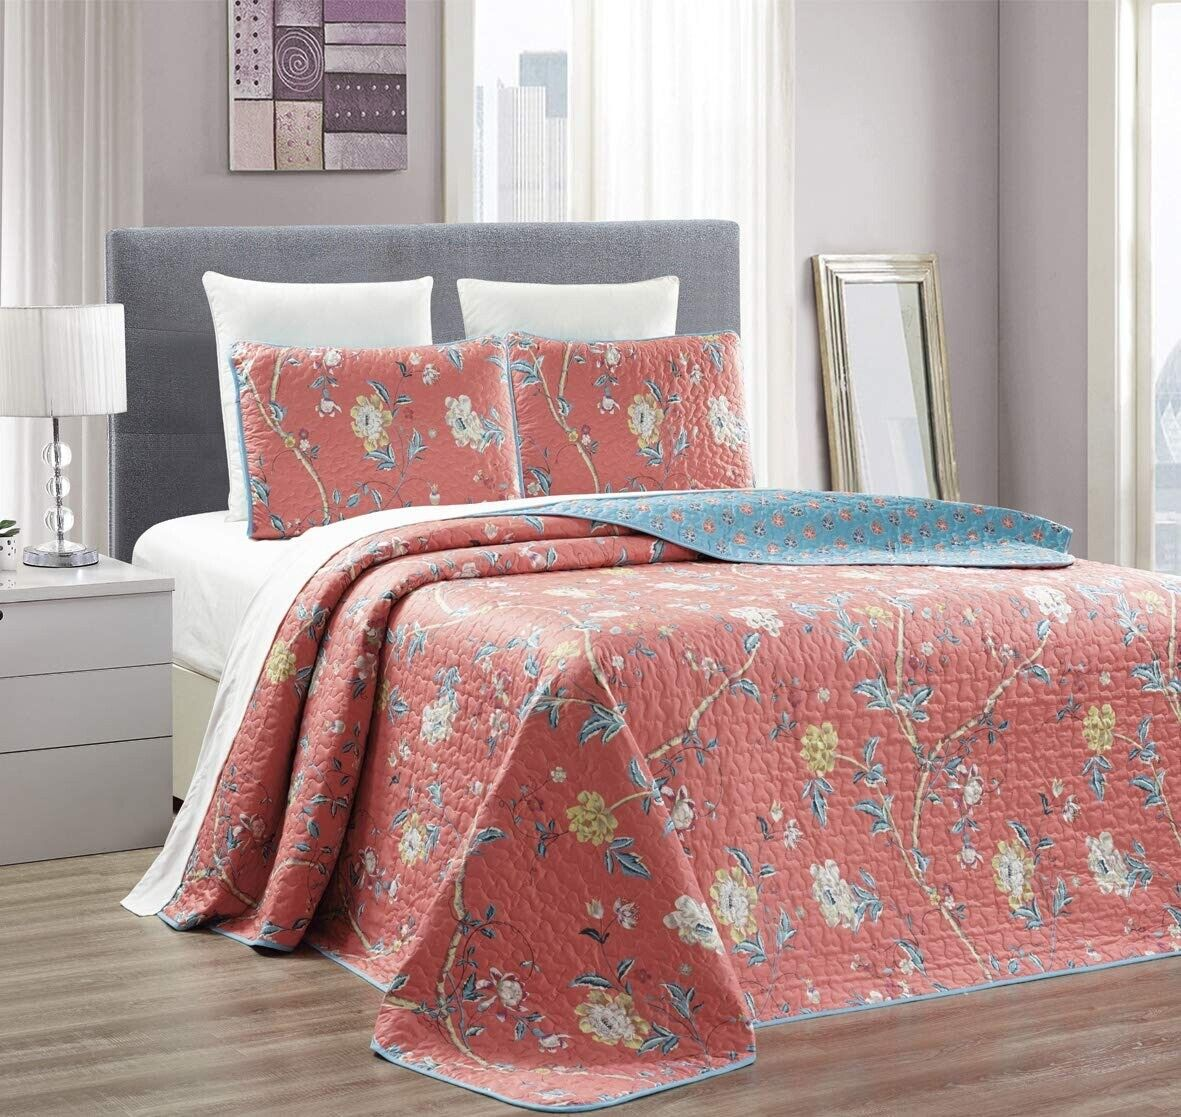 Picture of: 3pc Coral Blue Floral Quilt Reversible Full Queen Size Coverlet Set Bedspread For Sale Online